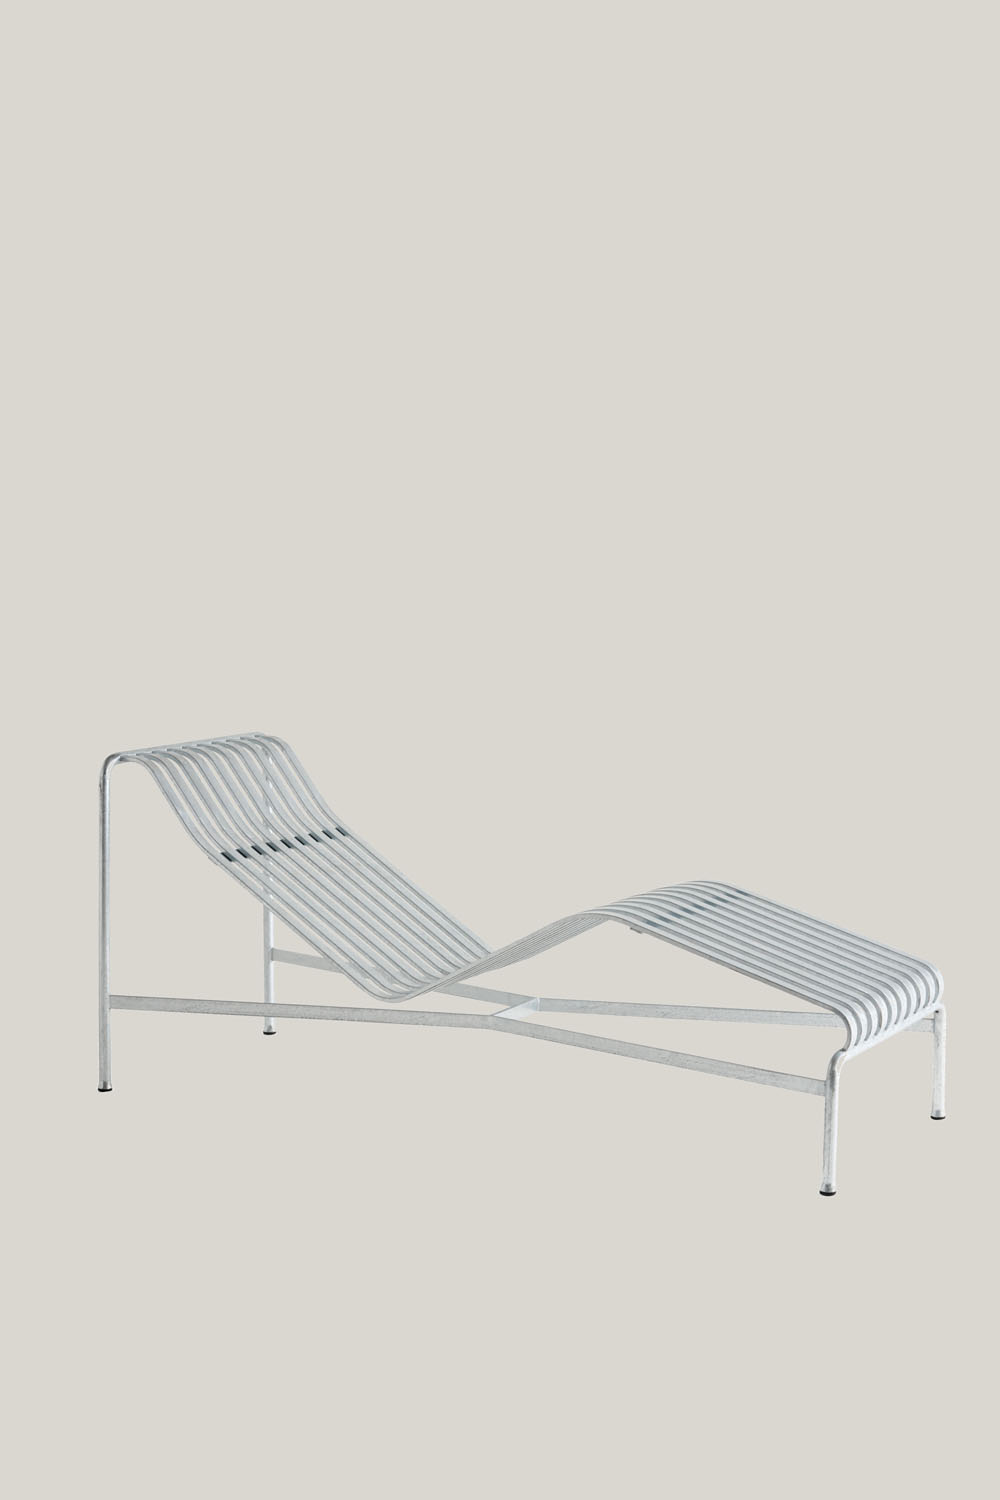 Palissade Chaise Lounge Hot Galvanised